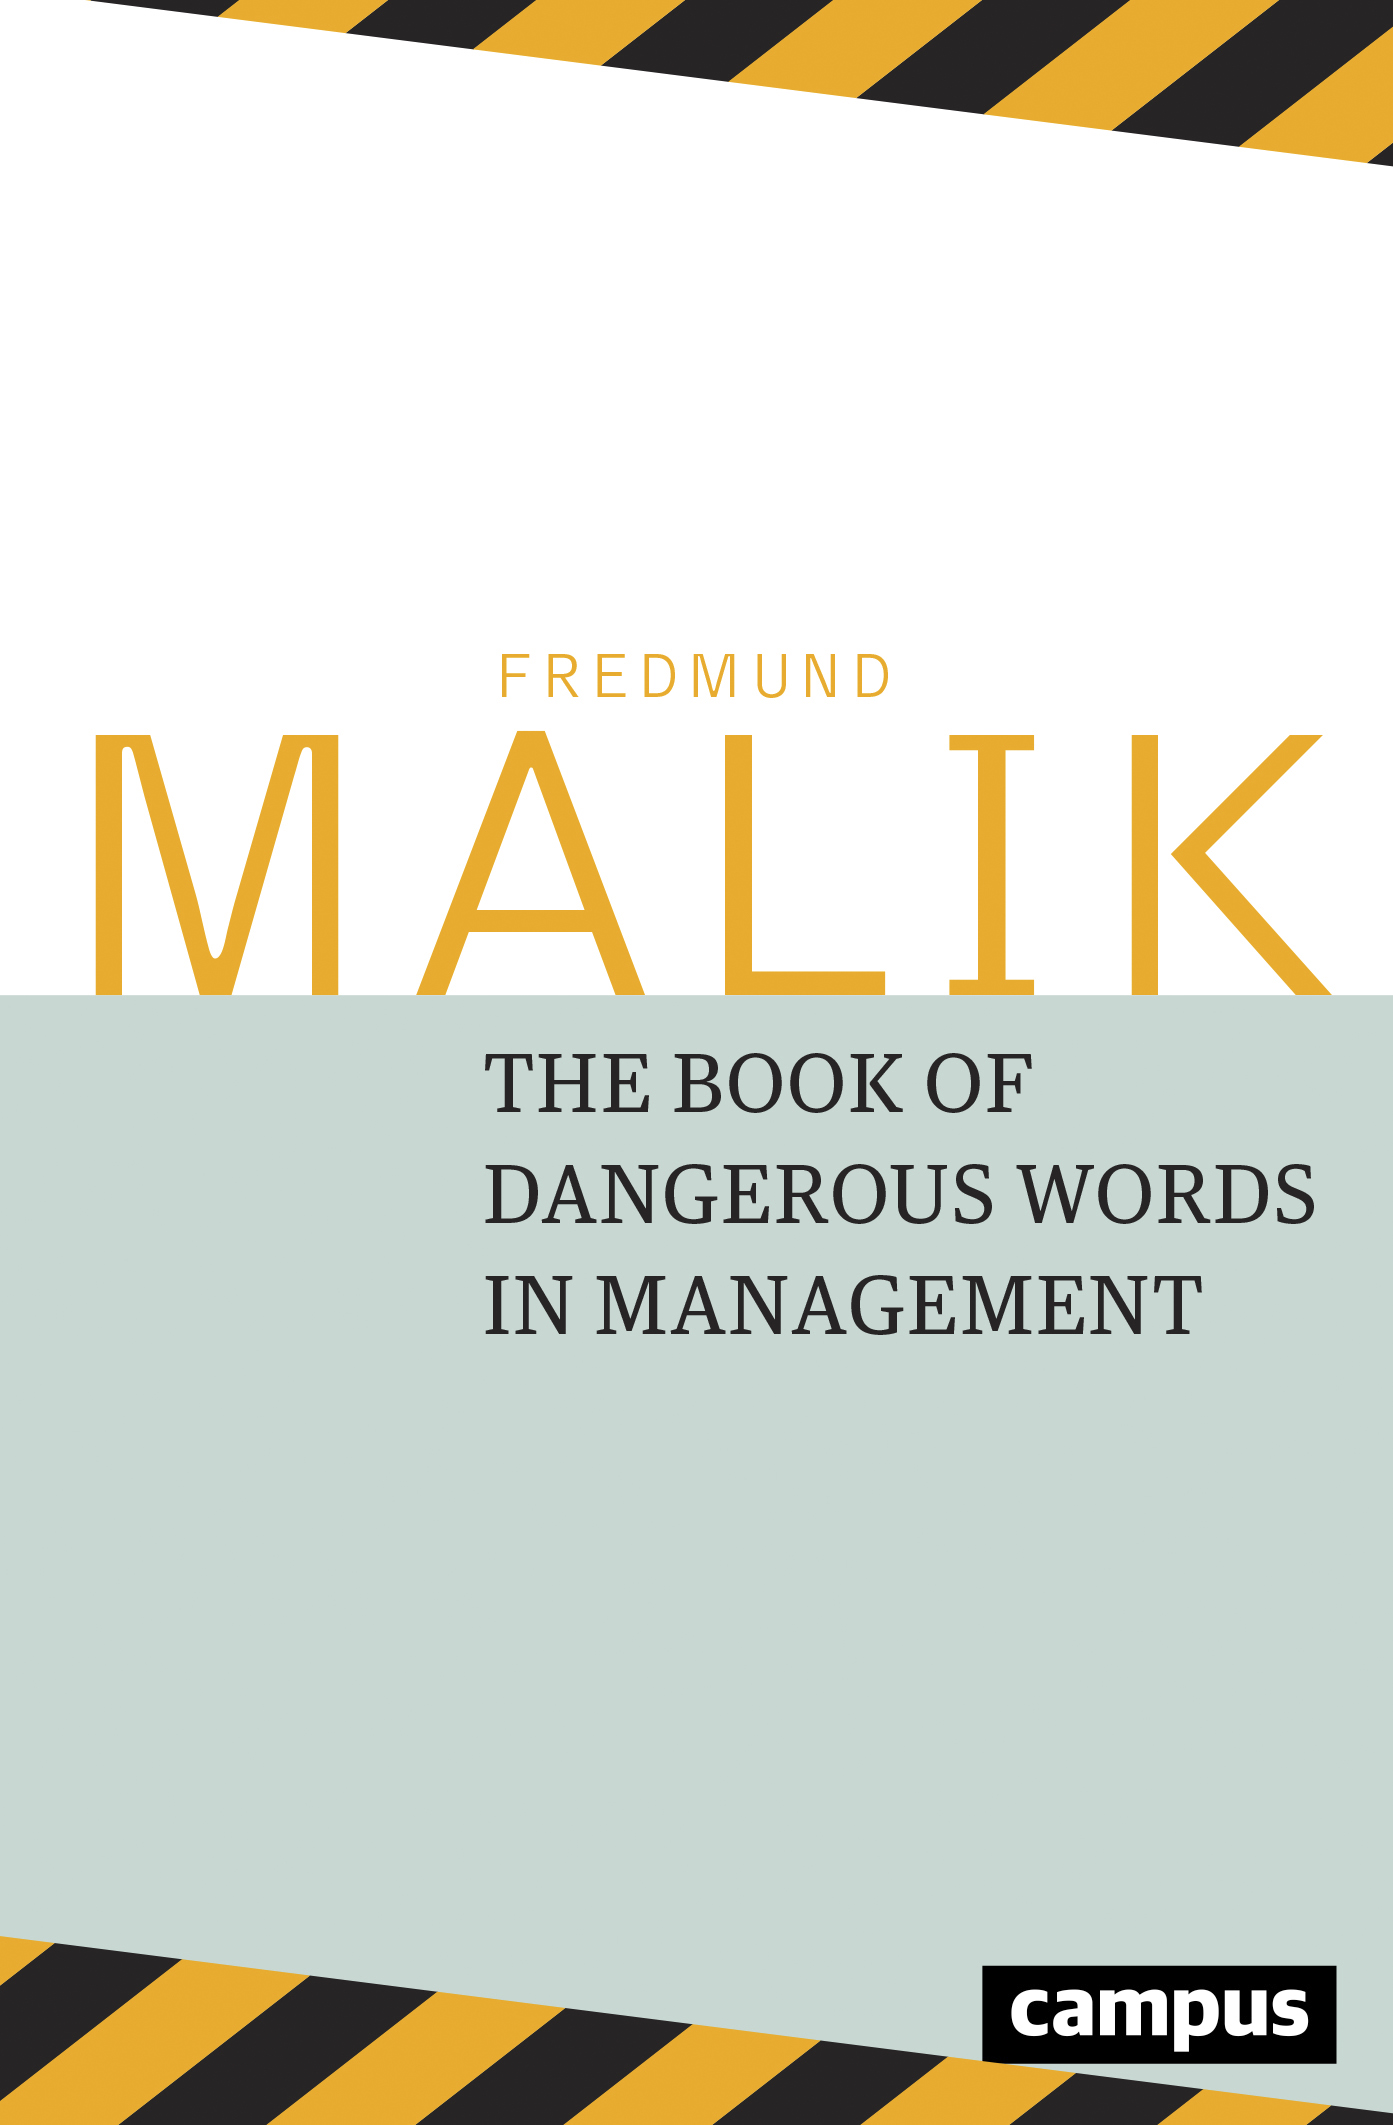 The Dangerous Words in Management